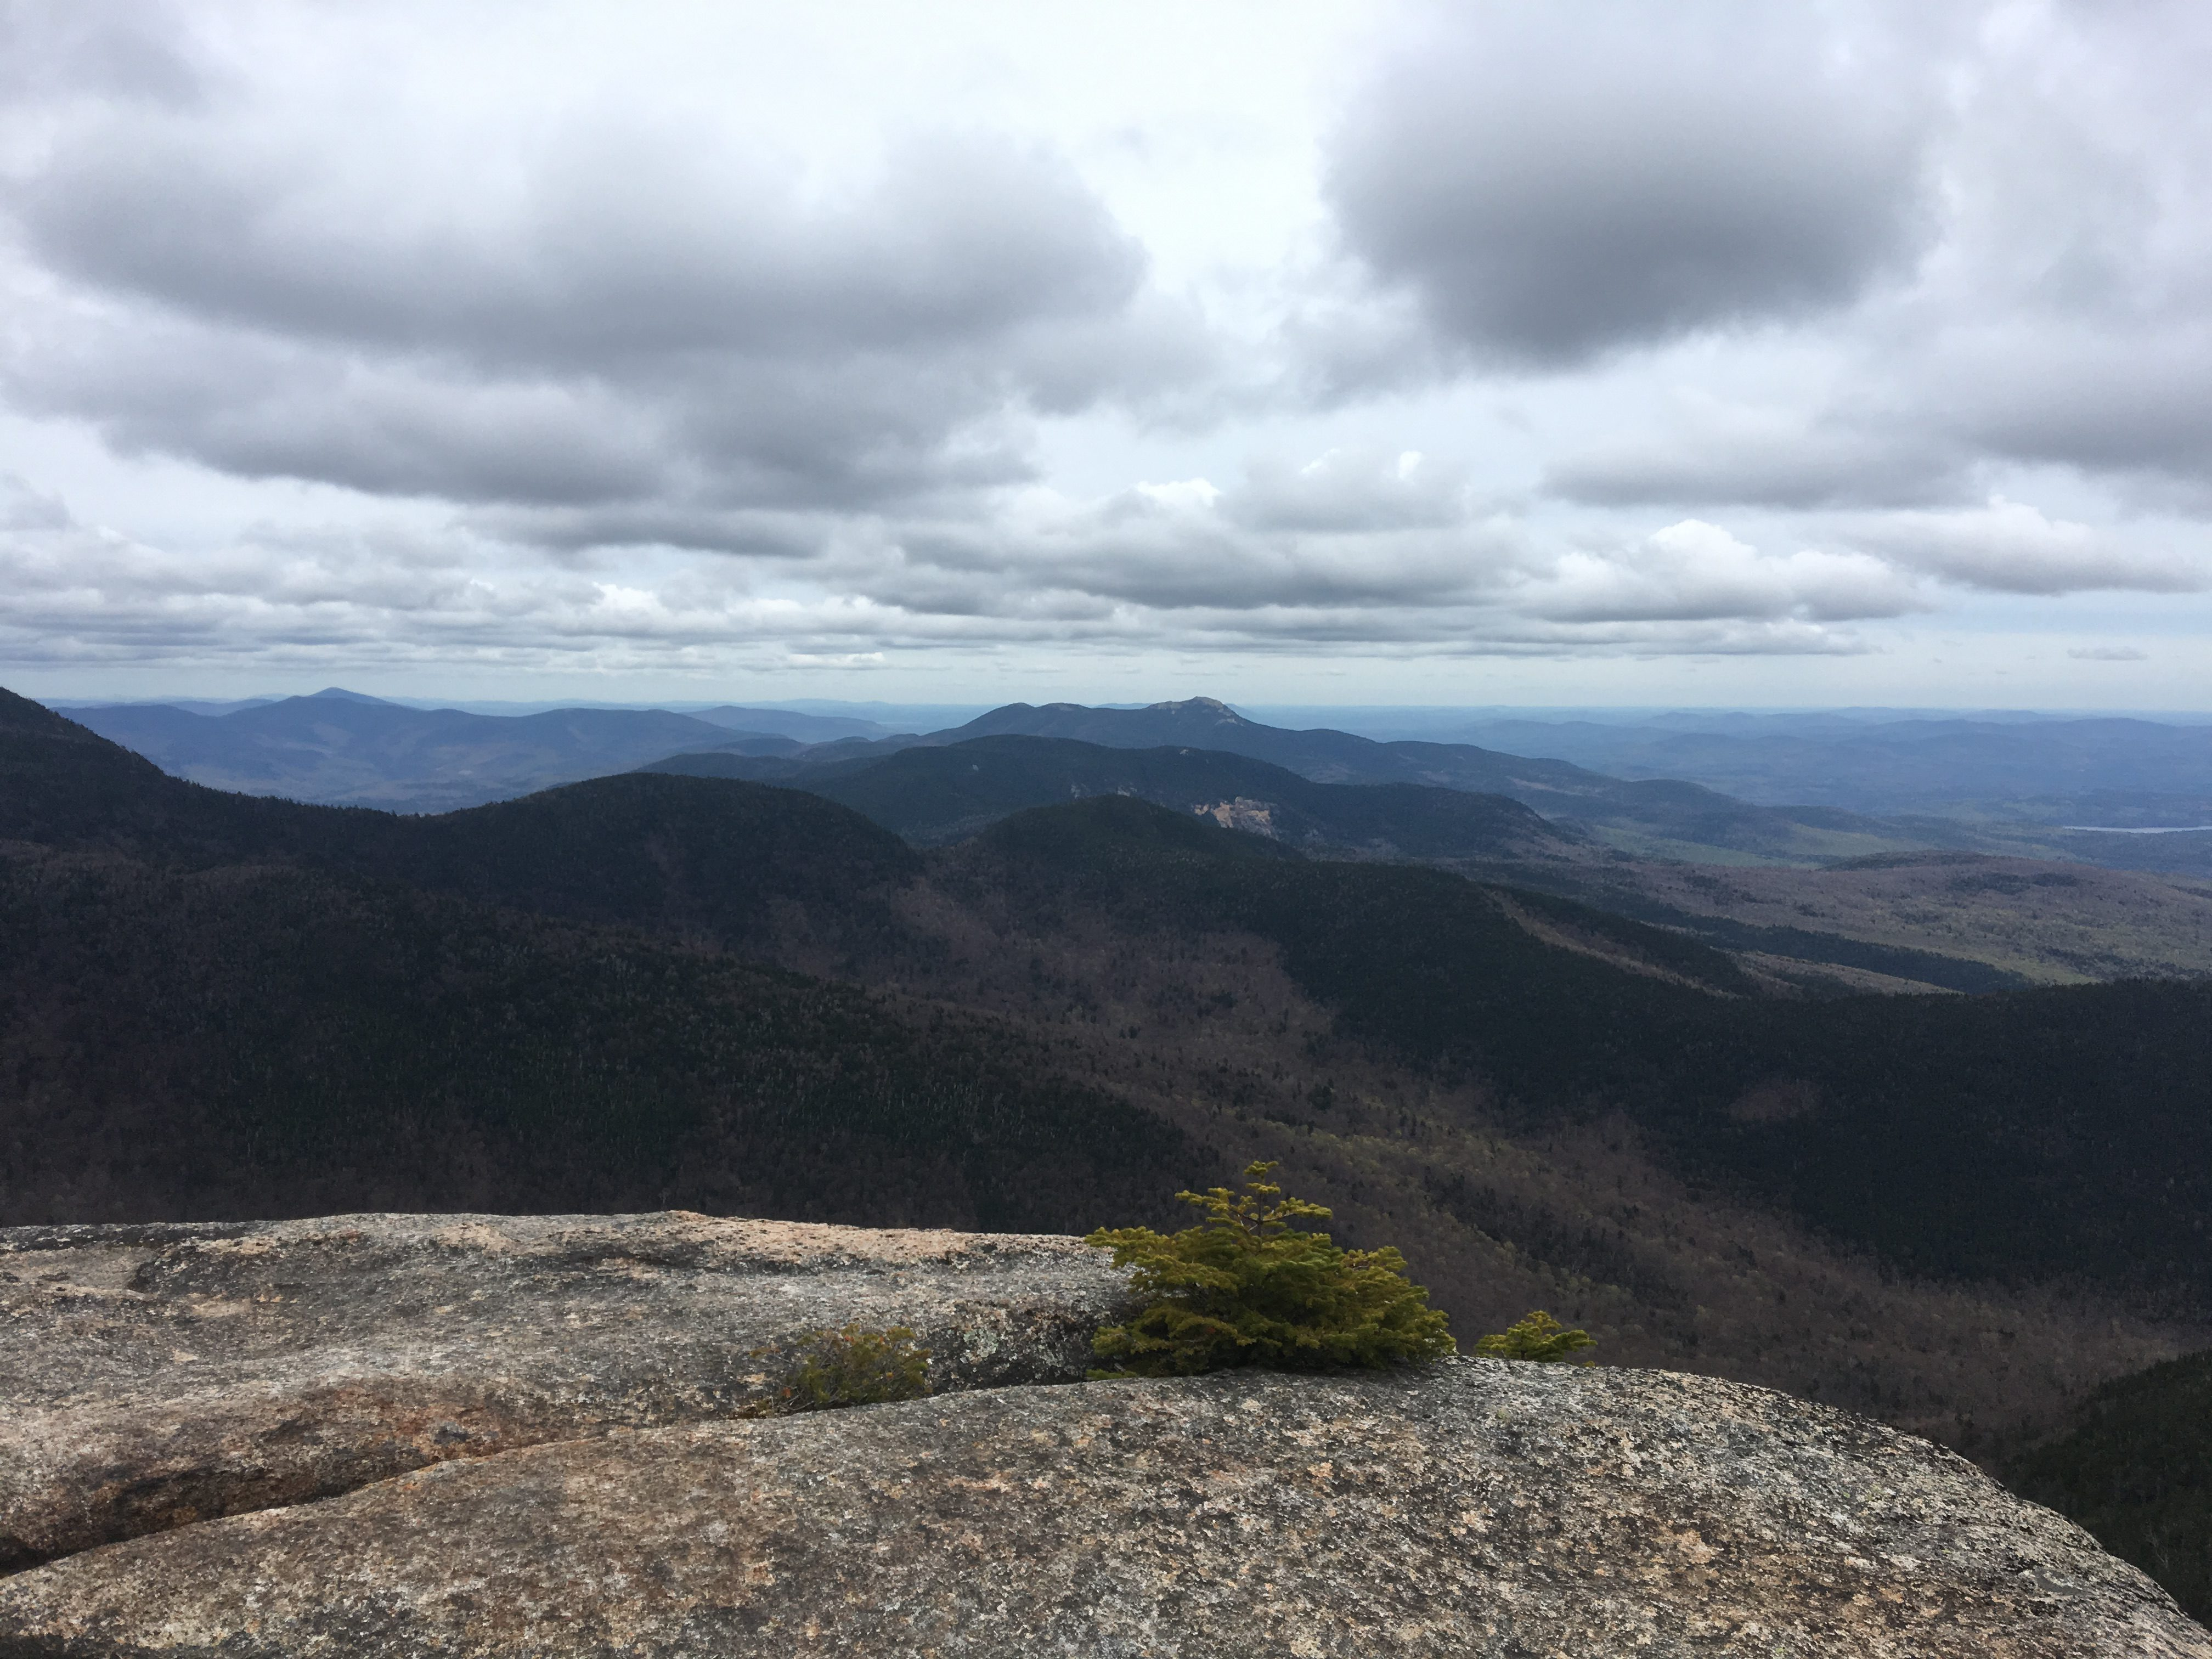 A moderate in the sandwich range nh: Hiking Mount Whiteface Sandwich Range White Mountains